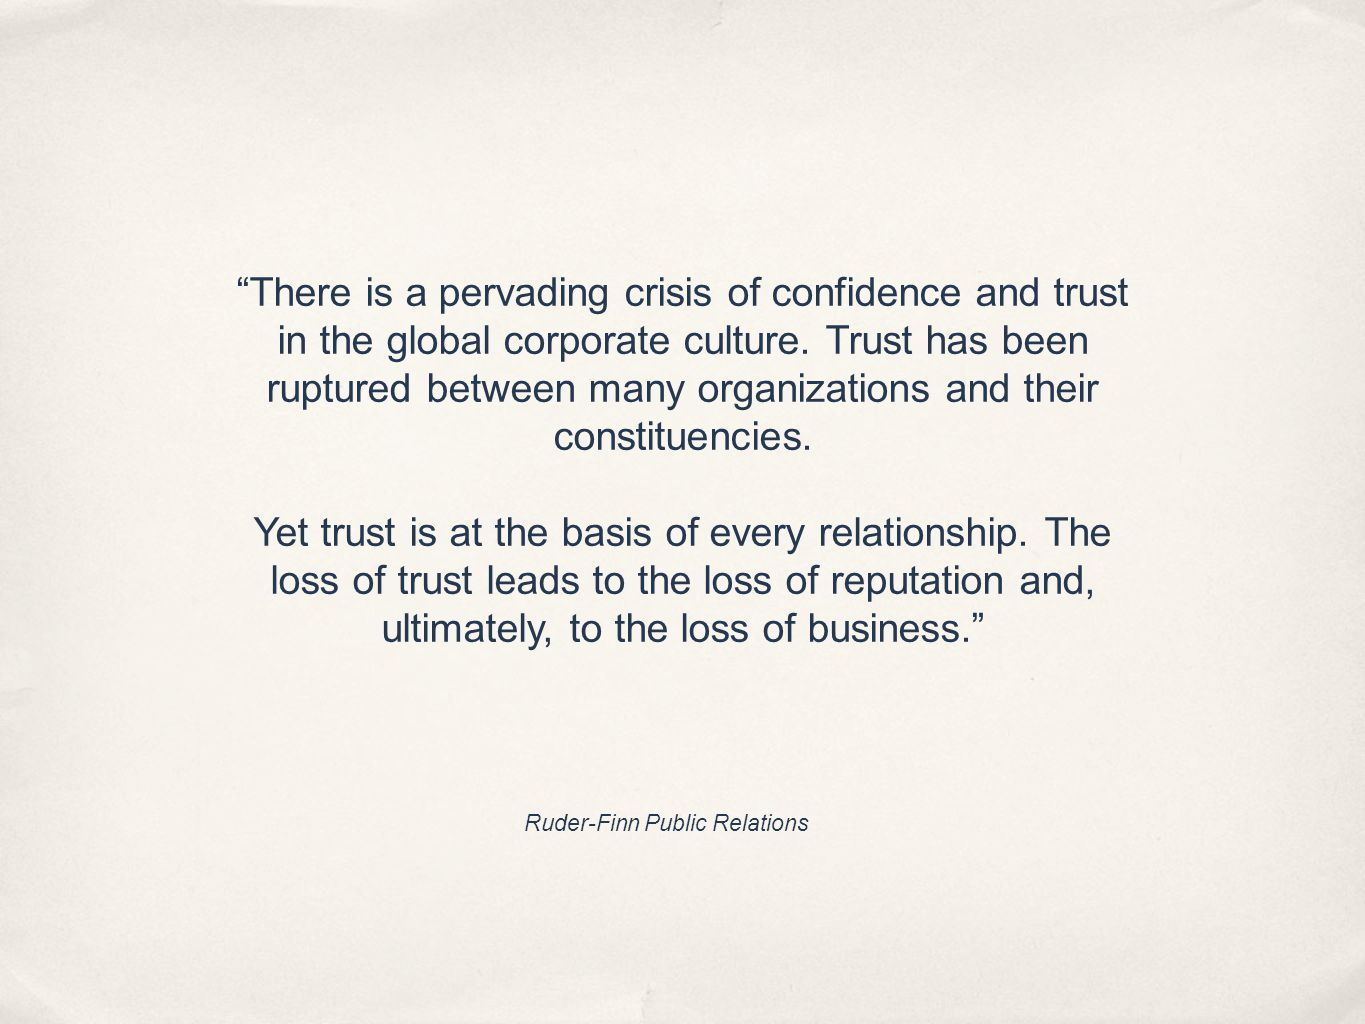 There is a pervading crisis of confidence and trust in the global corporate culture.